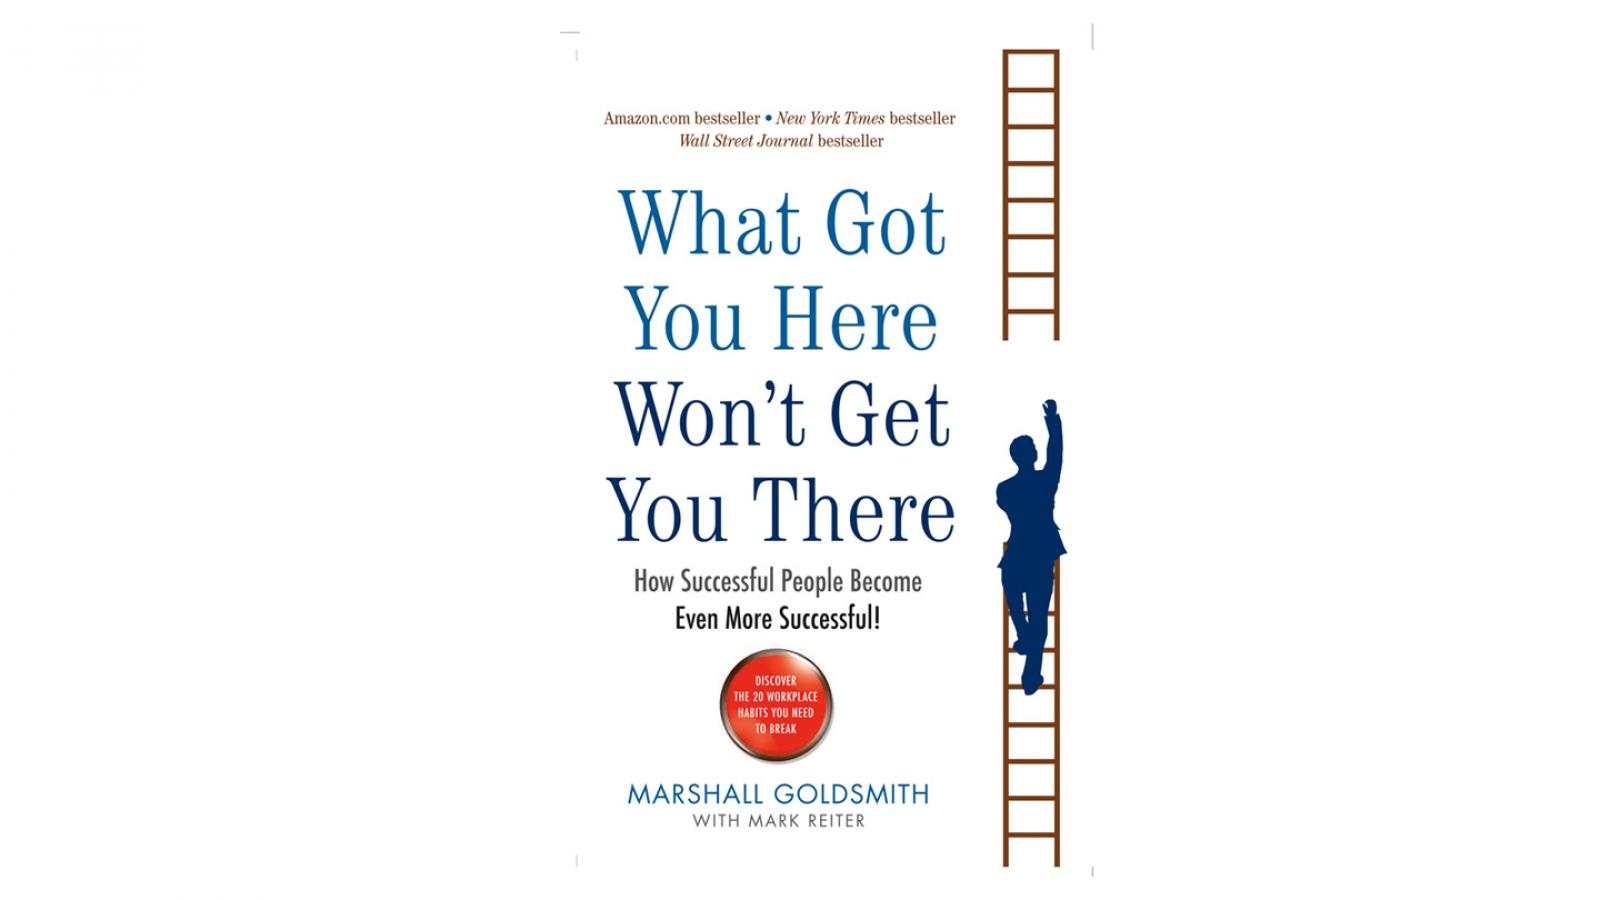 What Got You Here Won't Get You There - Book Suggestion